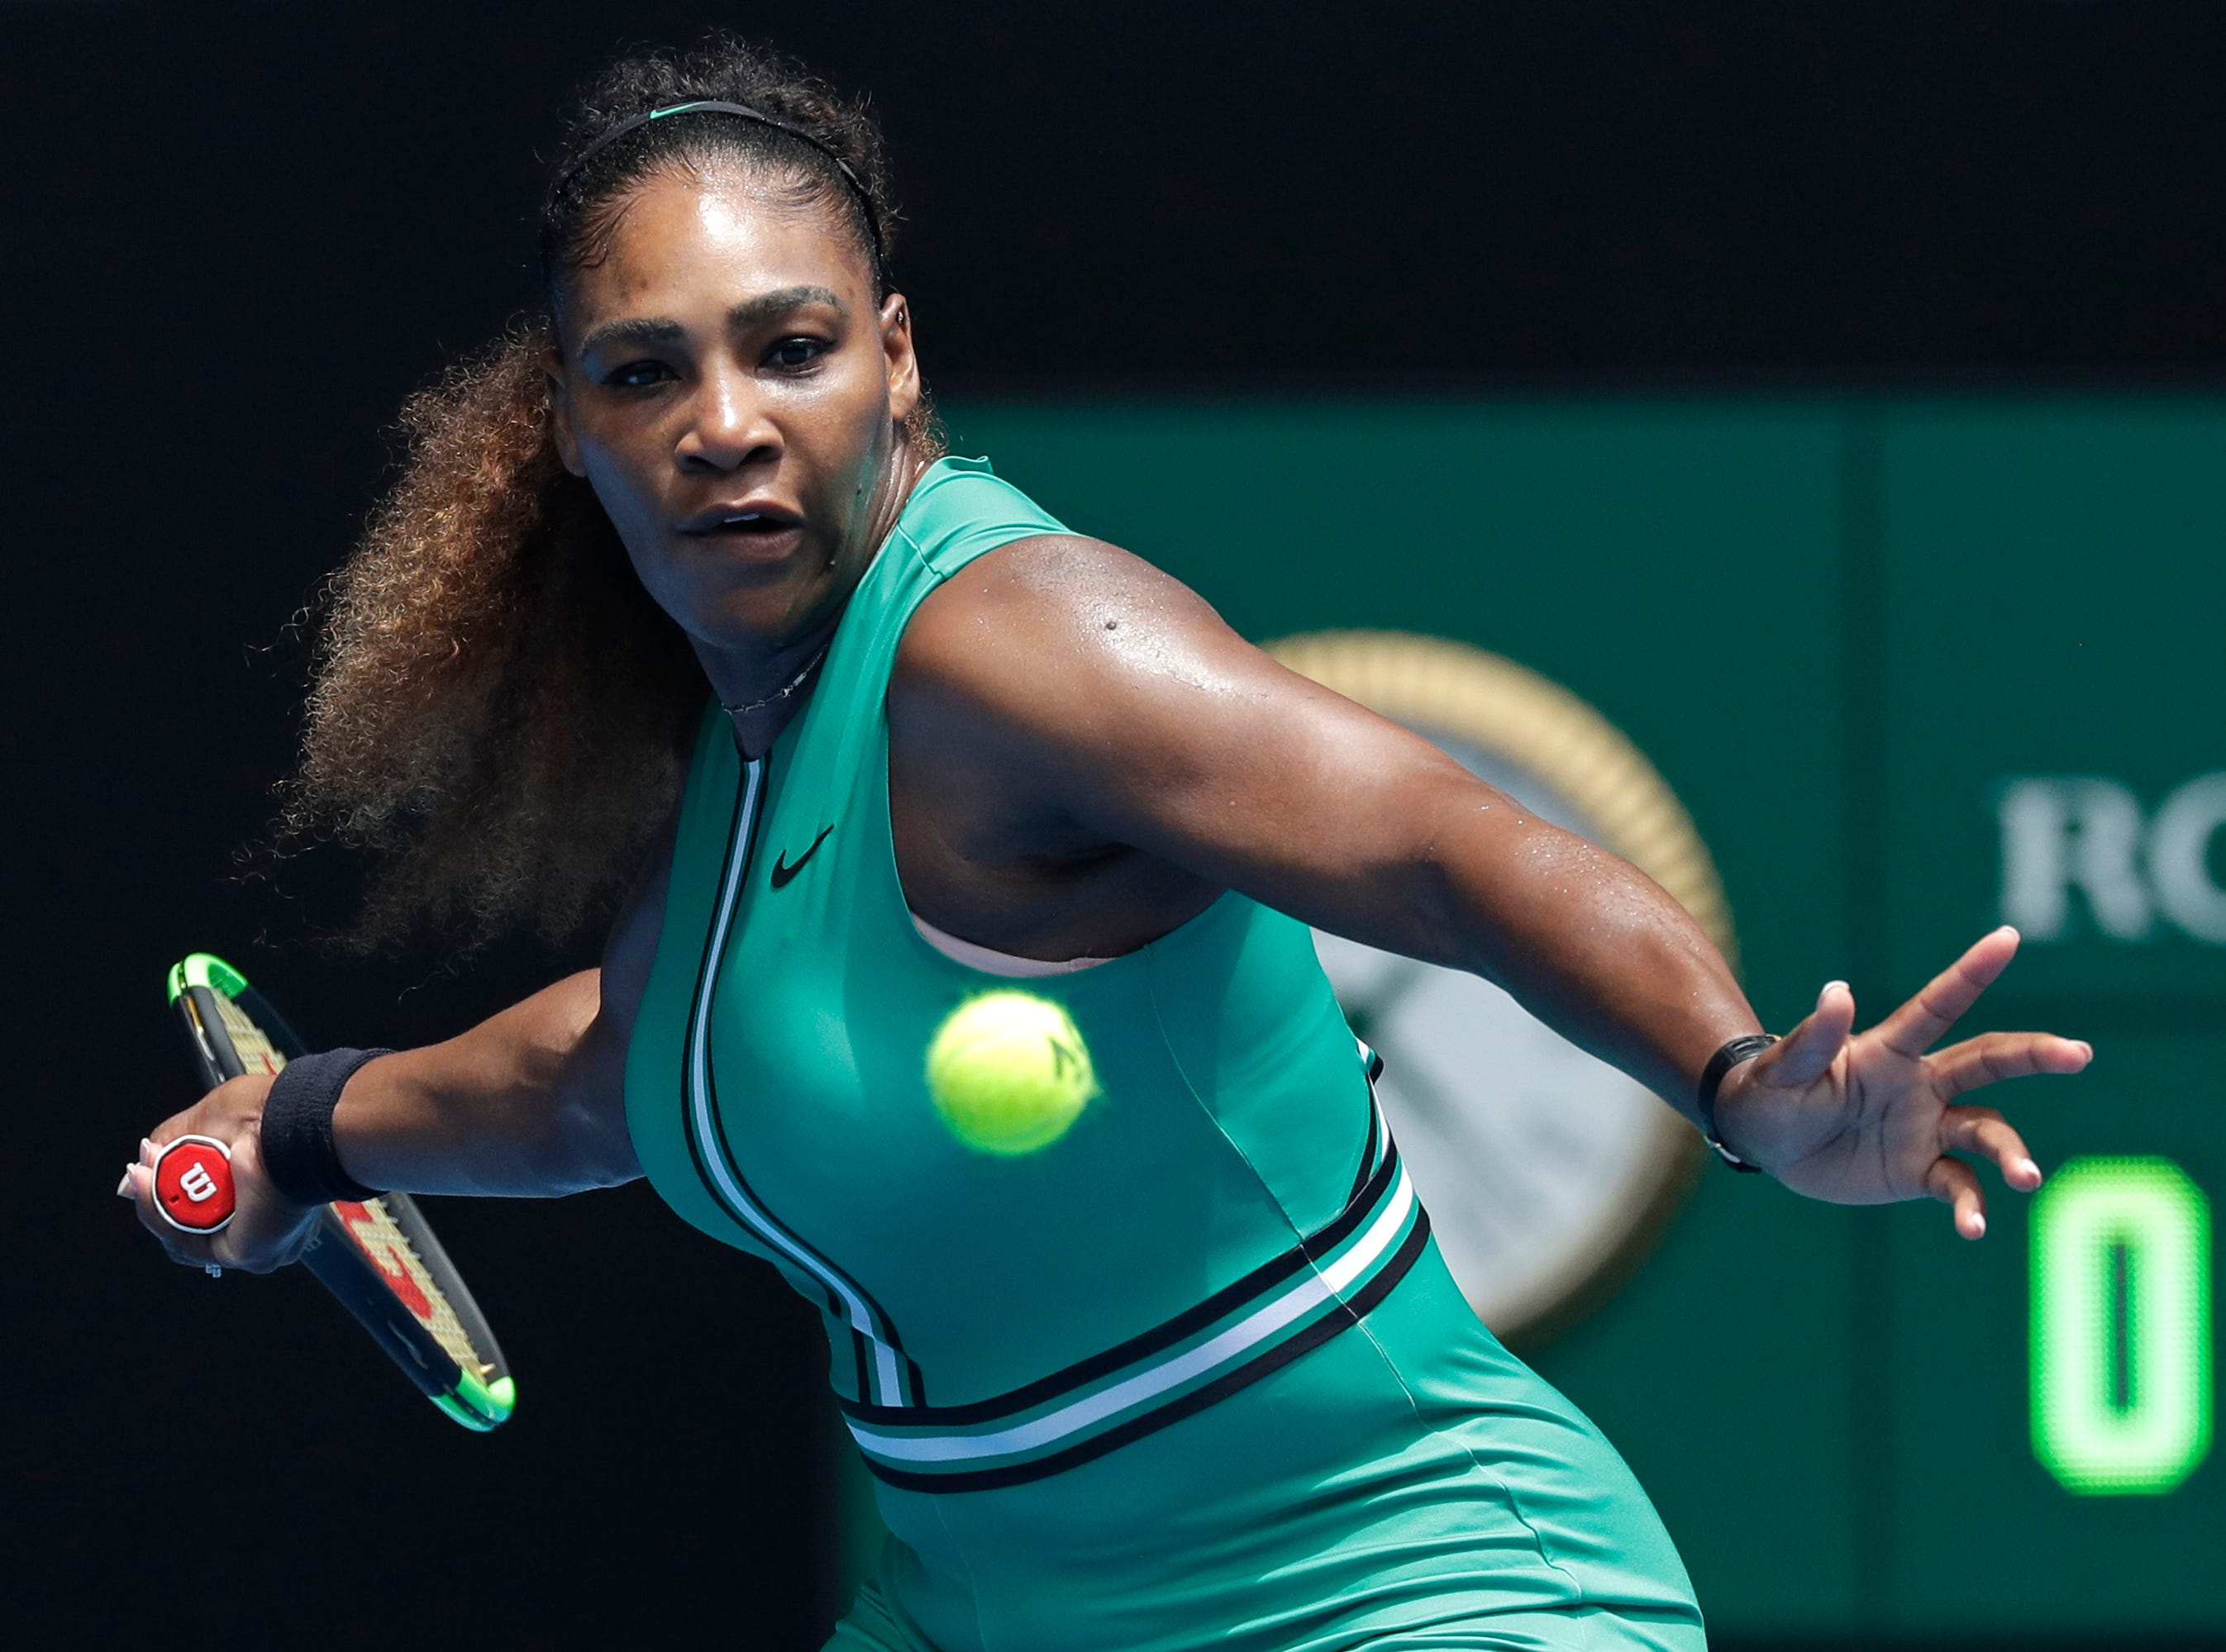 Serena Williams prepares to hit a forehand return to Germany's Tatjana Maria during their first round match at the Australian Open tennis championships in Melbourne, Australia, on Jan. 15.